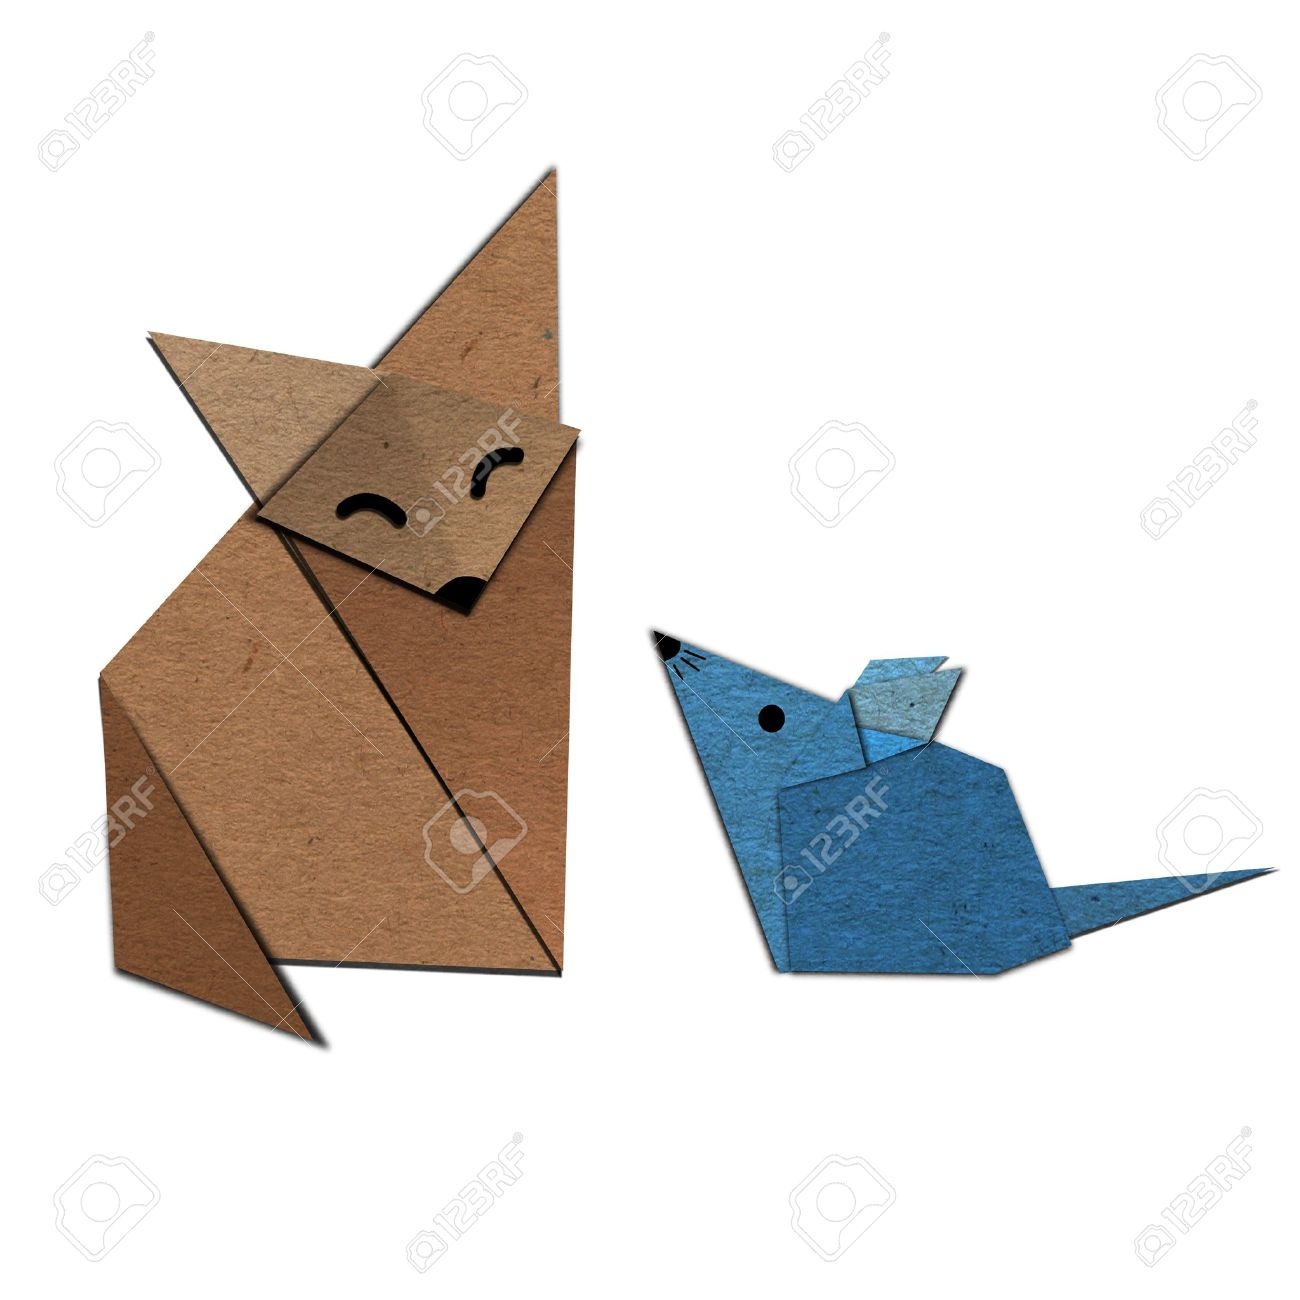 Origami of fox and rat form recycled paper stock photo picture origami of fox and rat form recycled paper stock photo 14956184 jeuxipadfo Images